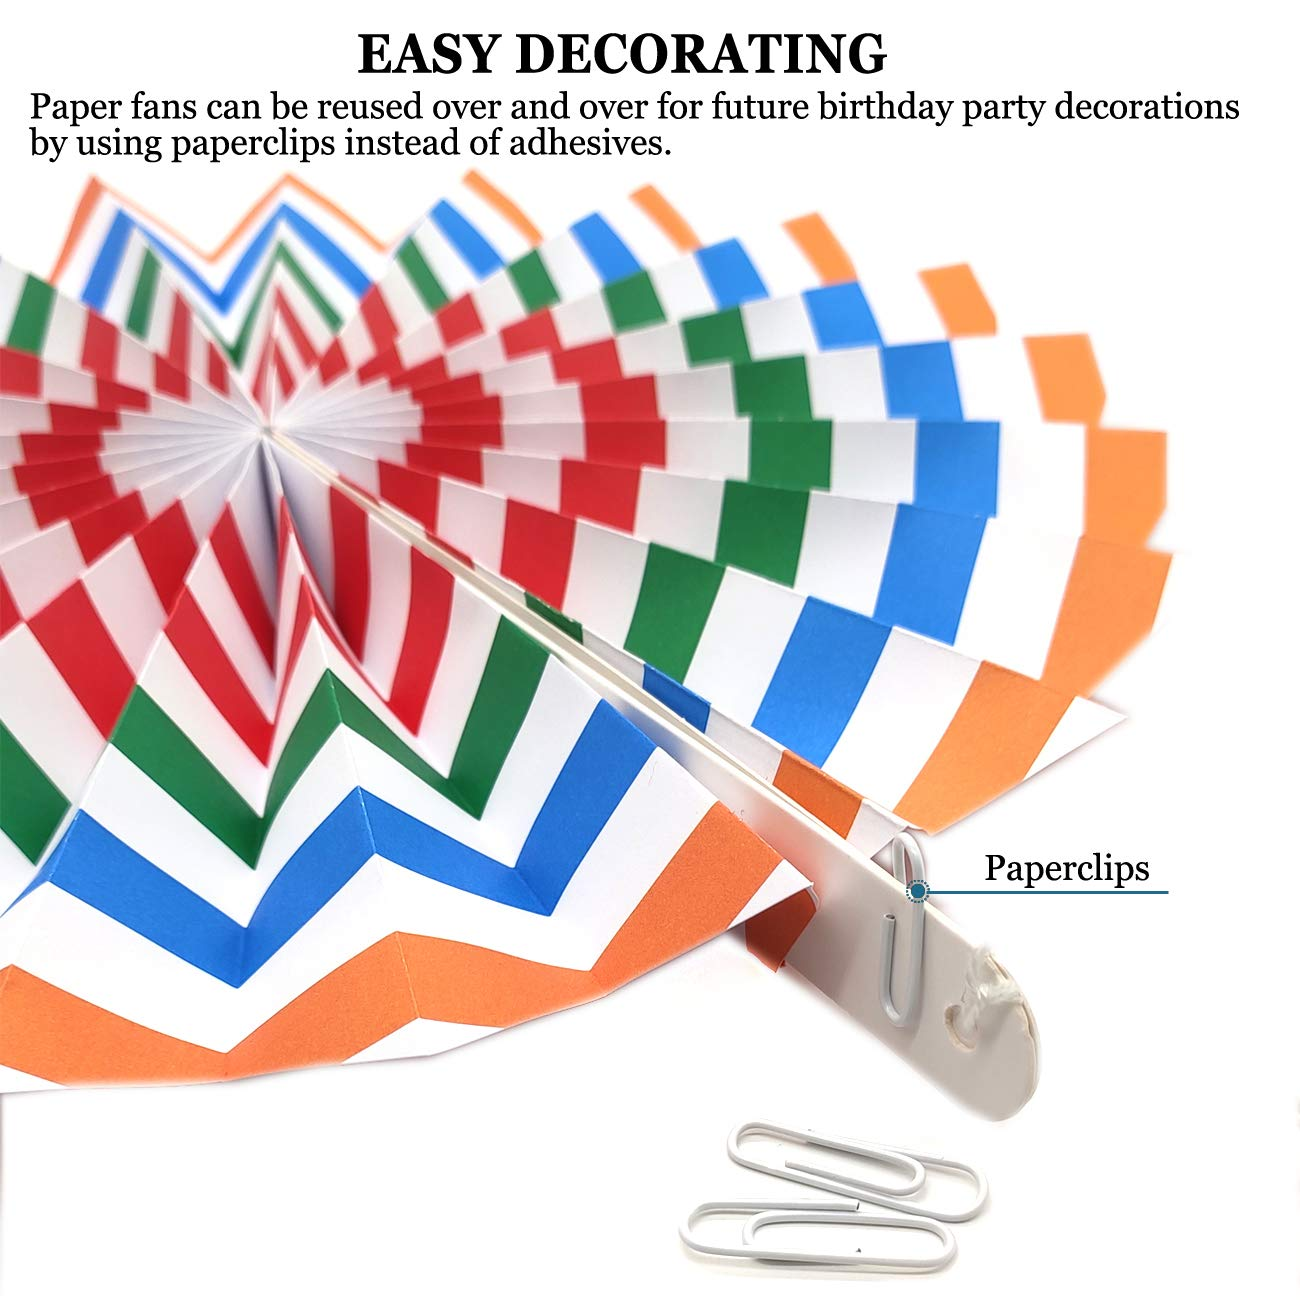 10 Pieces Hanging Paper Fans Colorful Paper Pom Poms,Tissue Paper Fan Decorations Hanging Paper for Wedding Party Baby Shower Rainbow Party Decorations Birthday Wall Decor Graduation Christmas